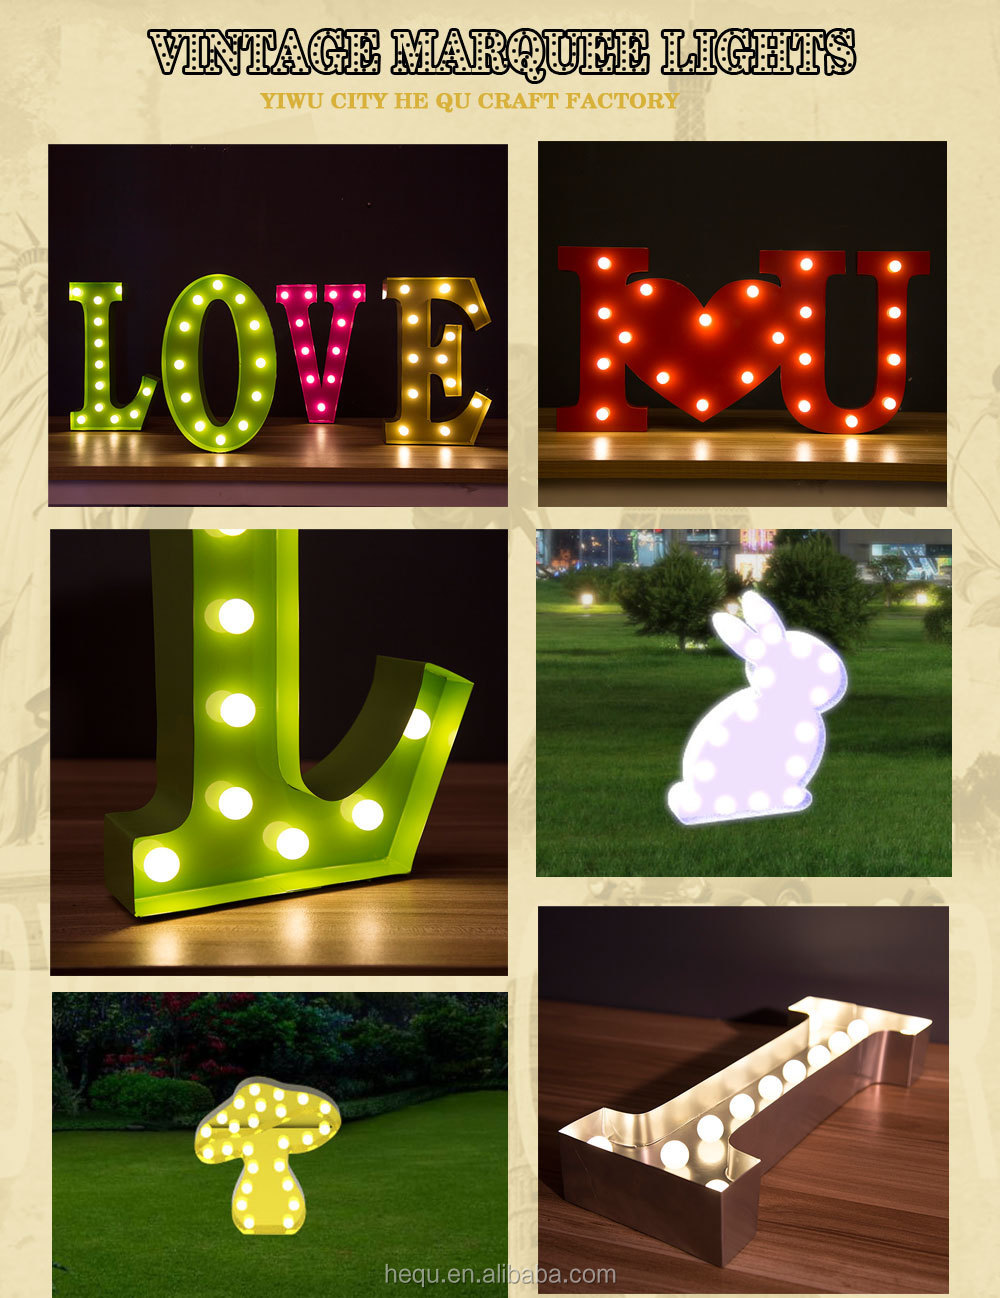 metal vintage led letters light up christmas decorations